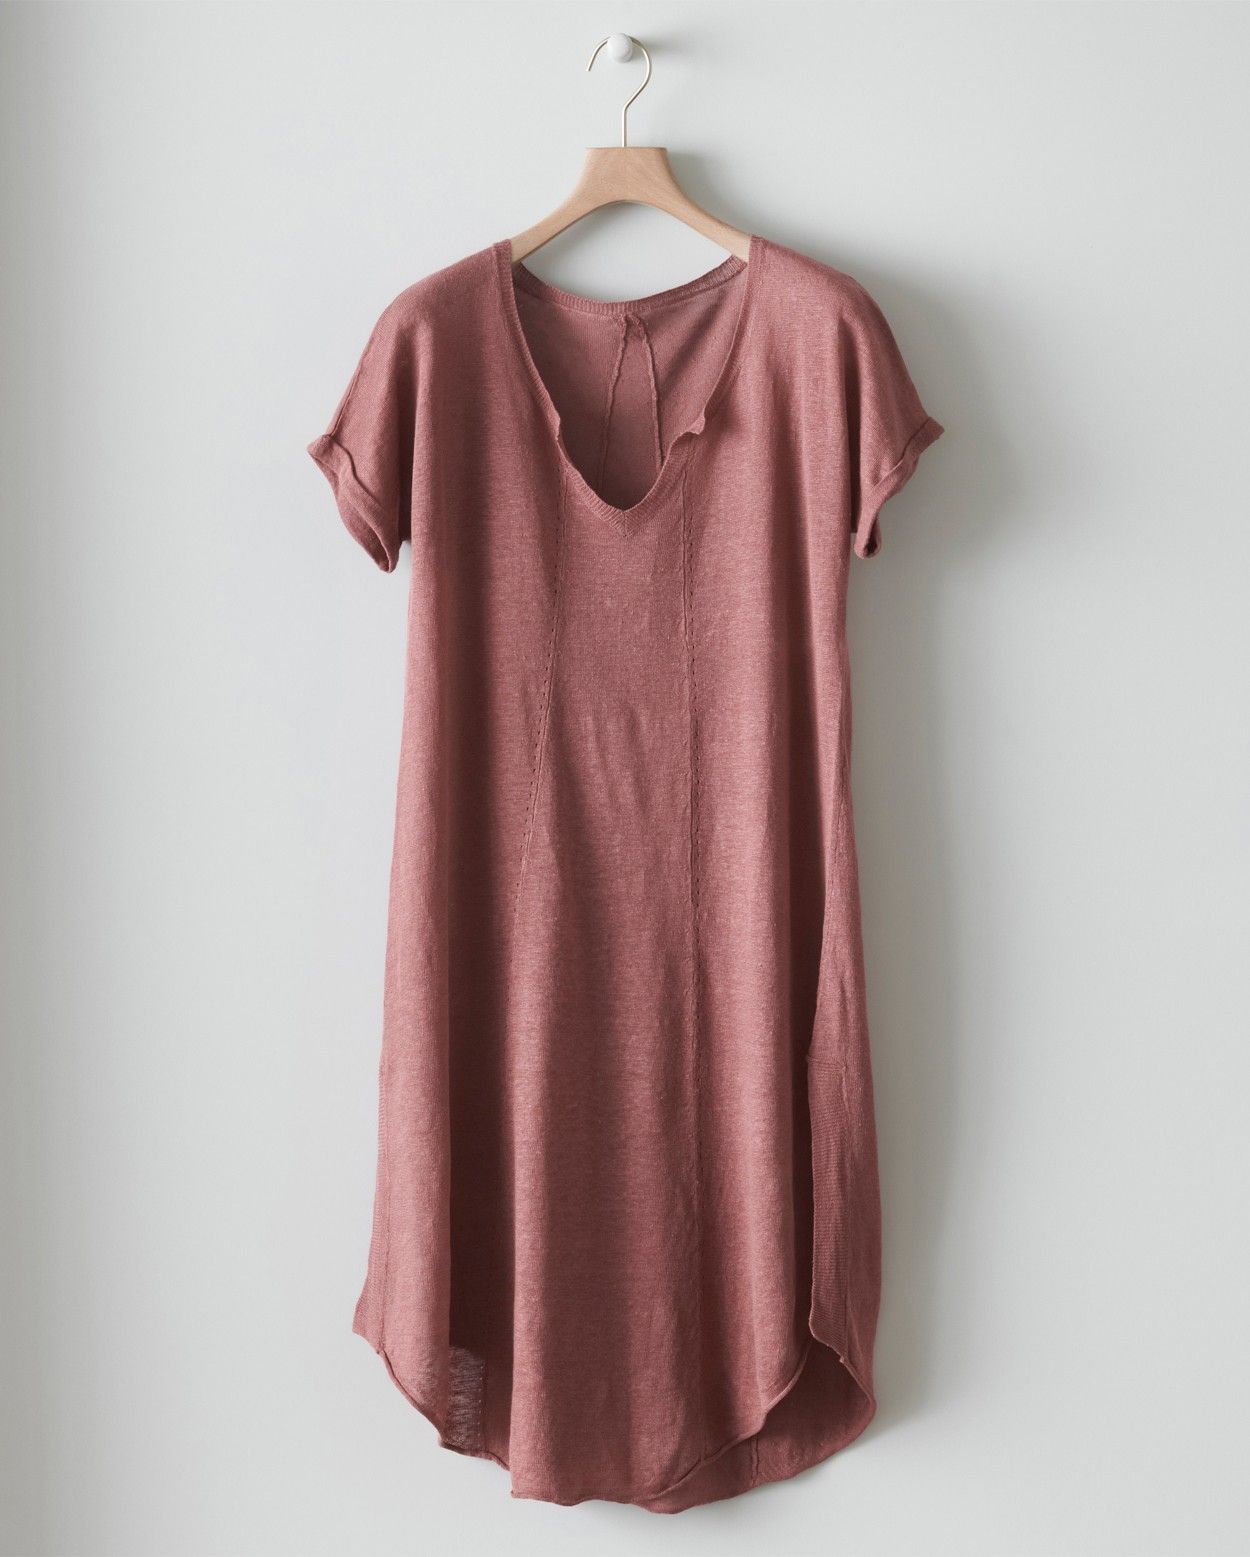 Image of linen trapeze knitted henley tops pinterest henleys